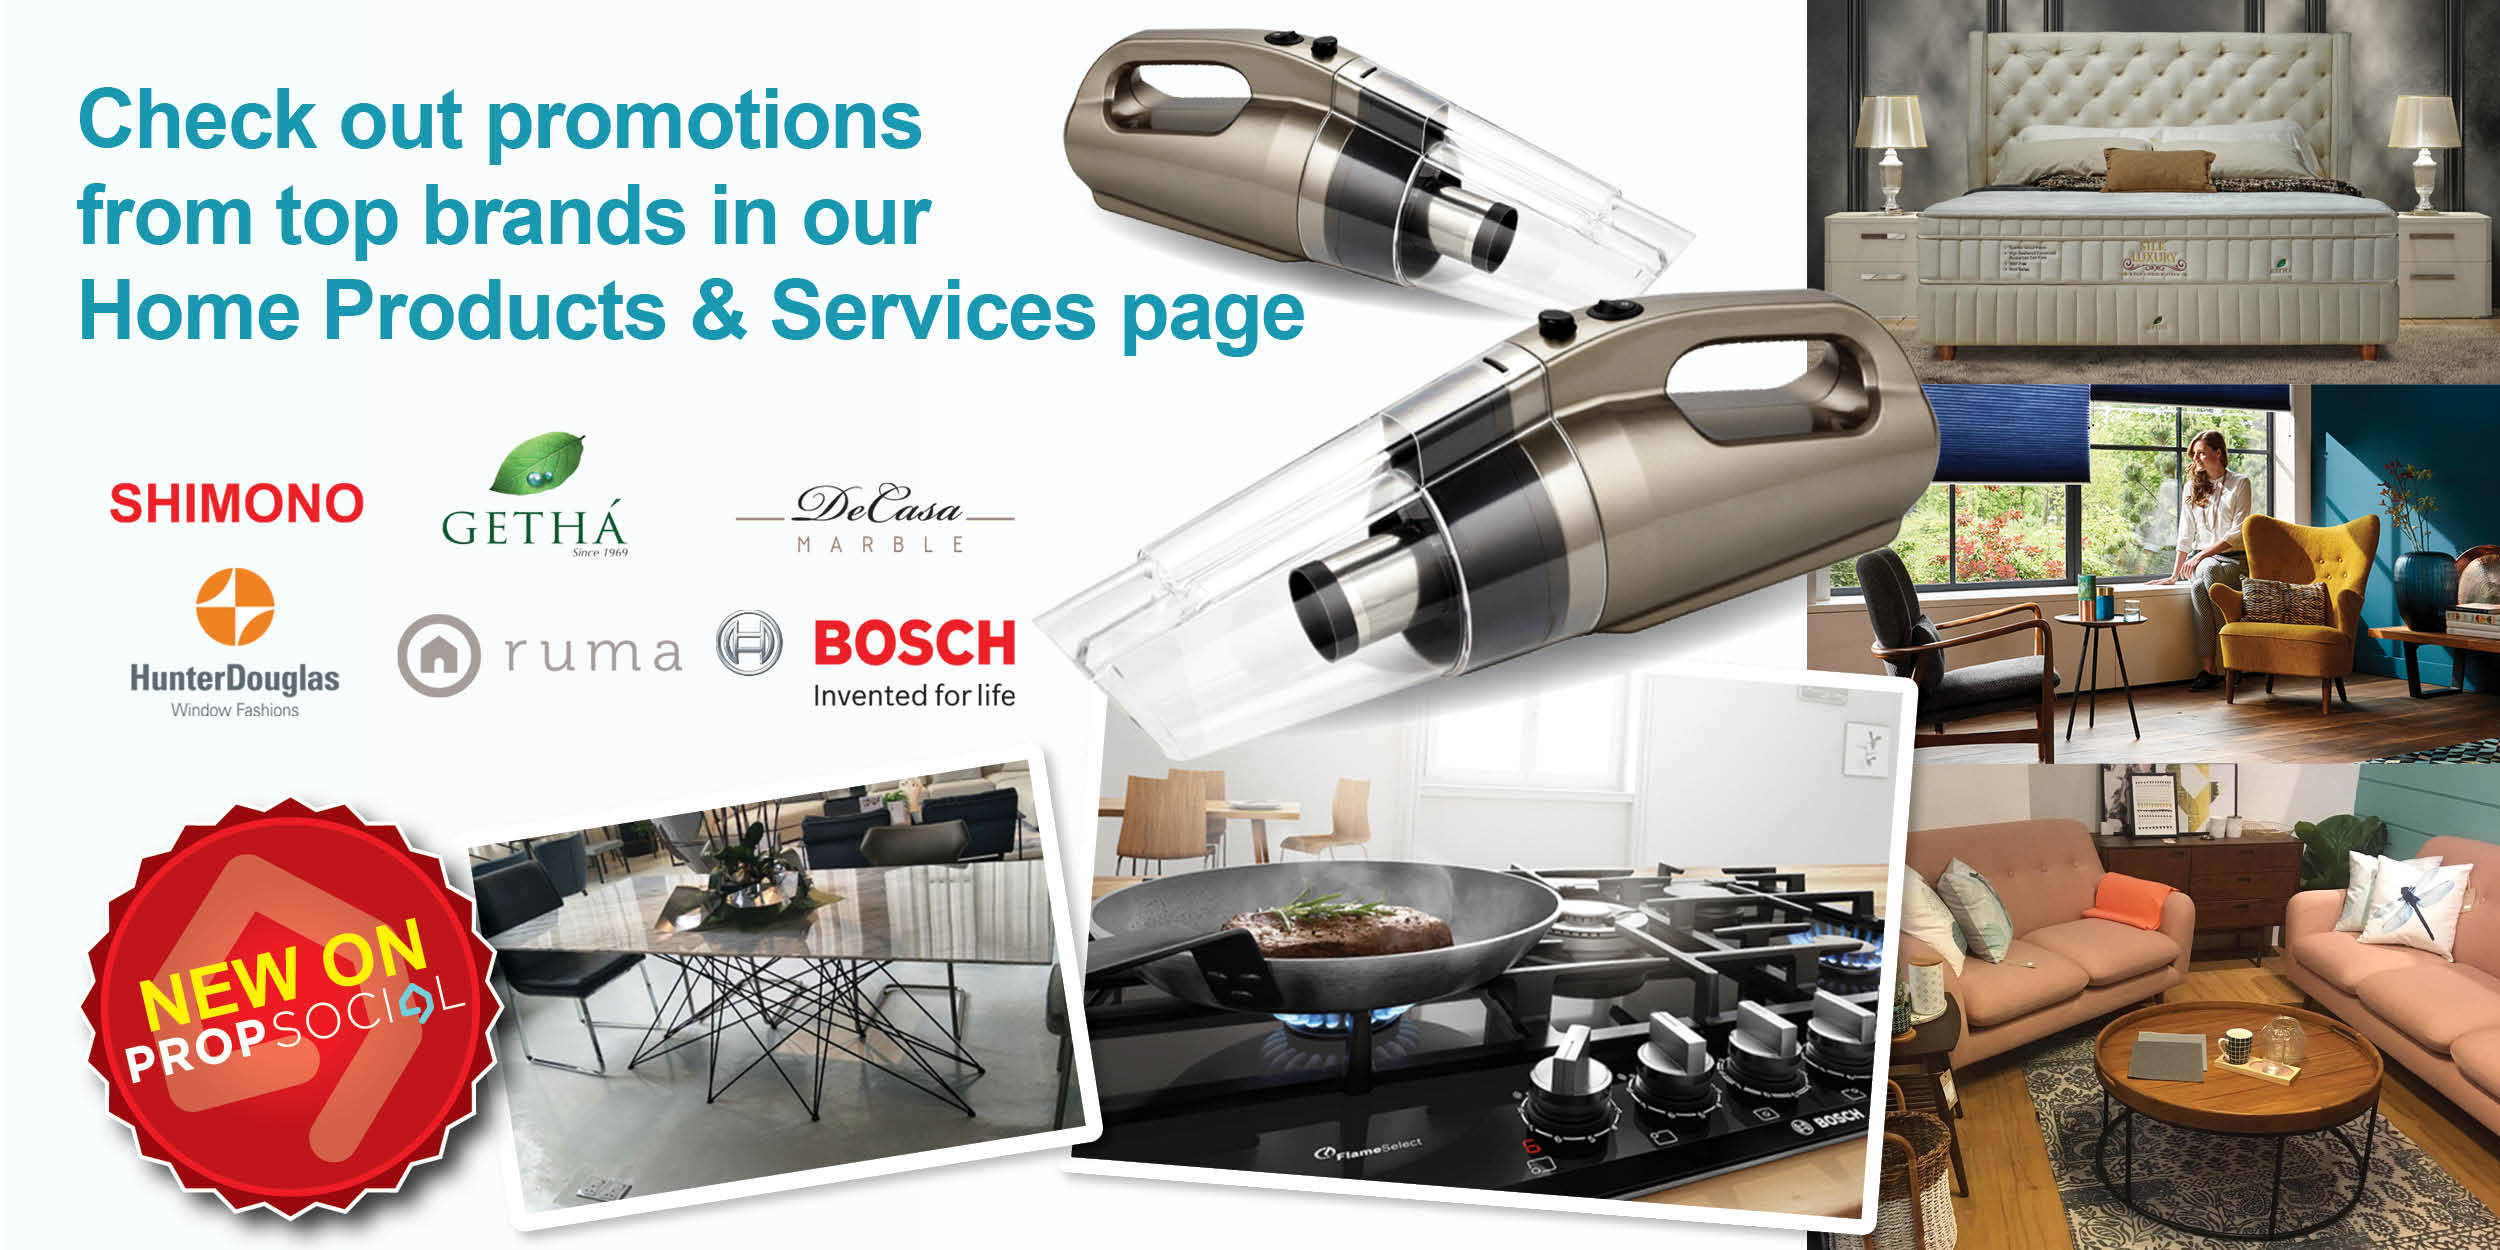 Propsocial home products and services